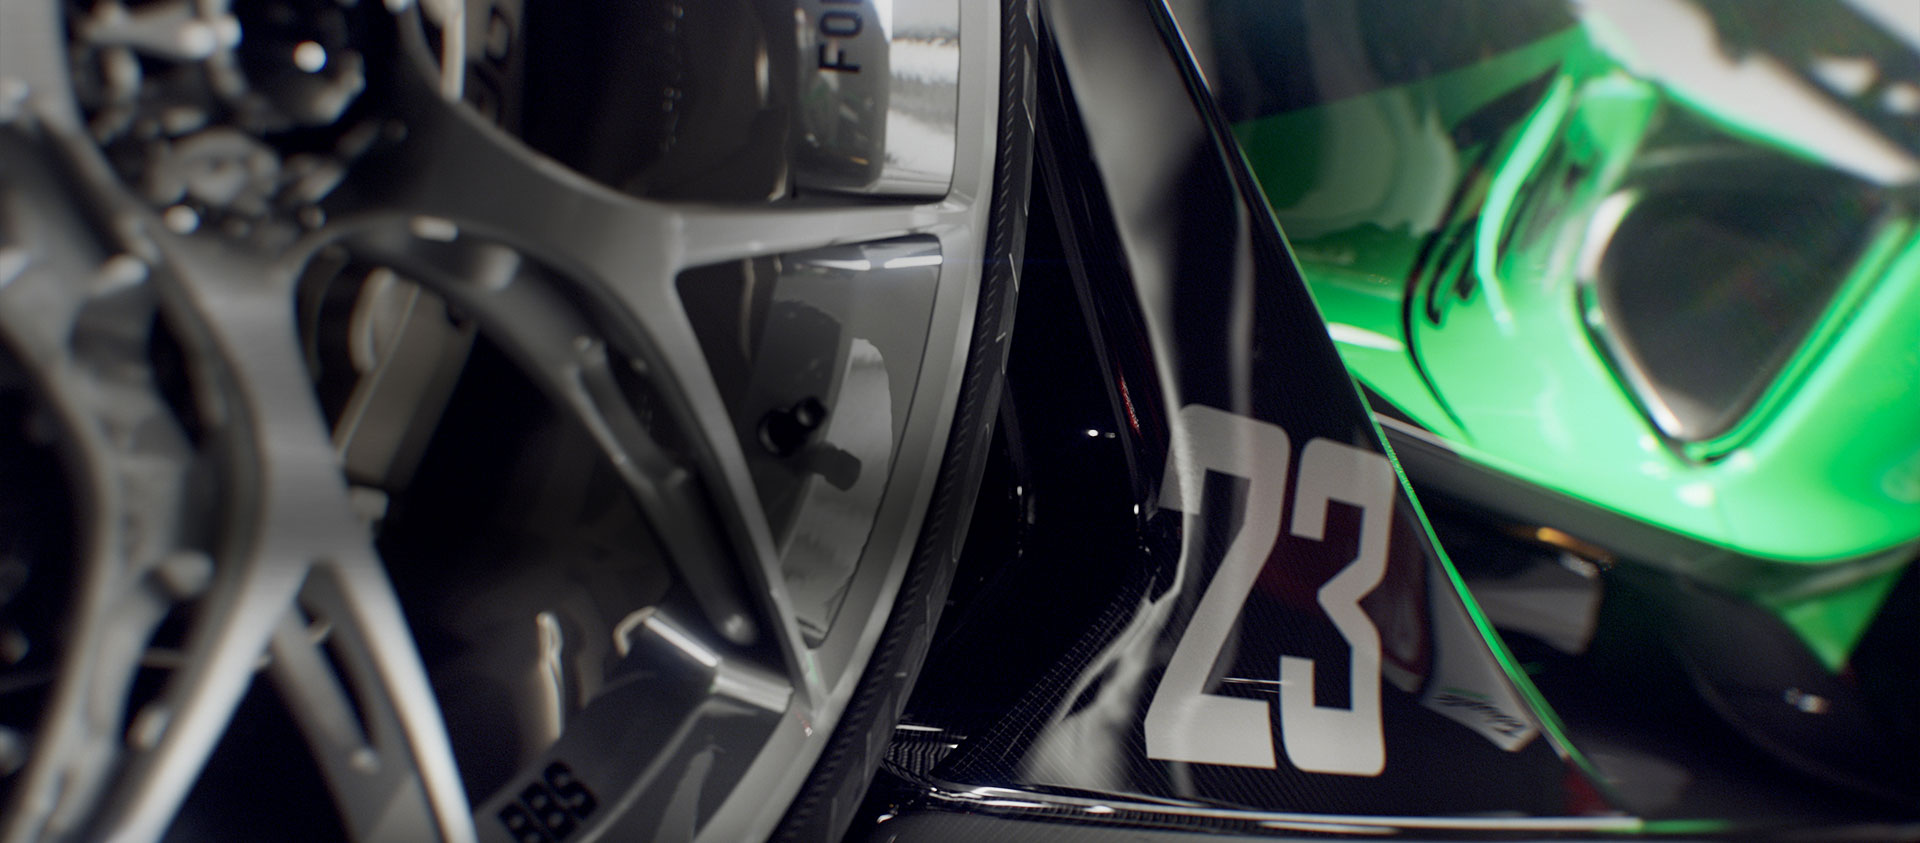 The number 23 is featured on the side of a performance car.